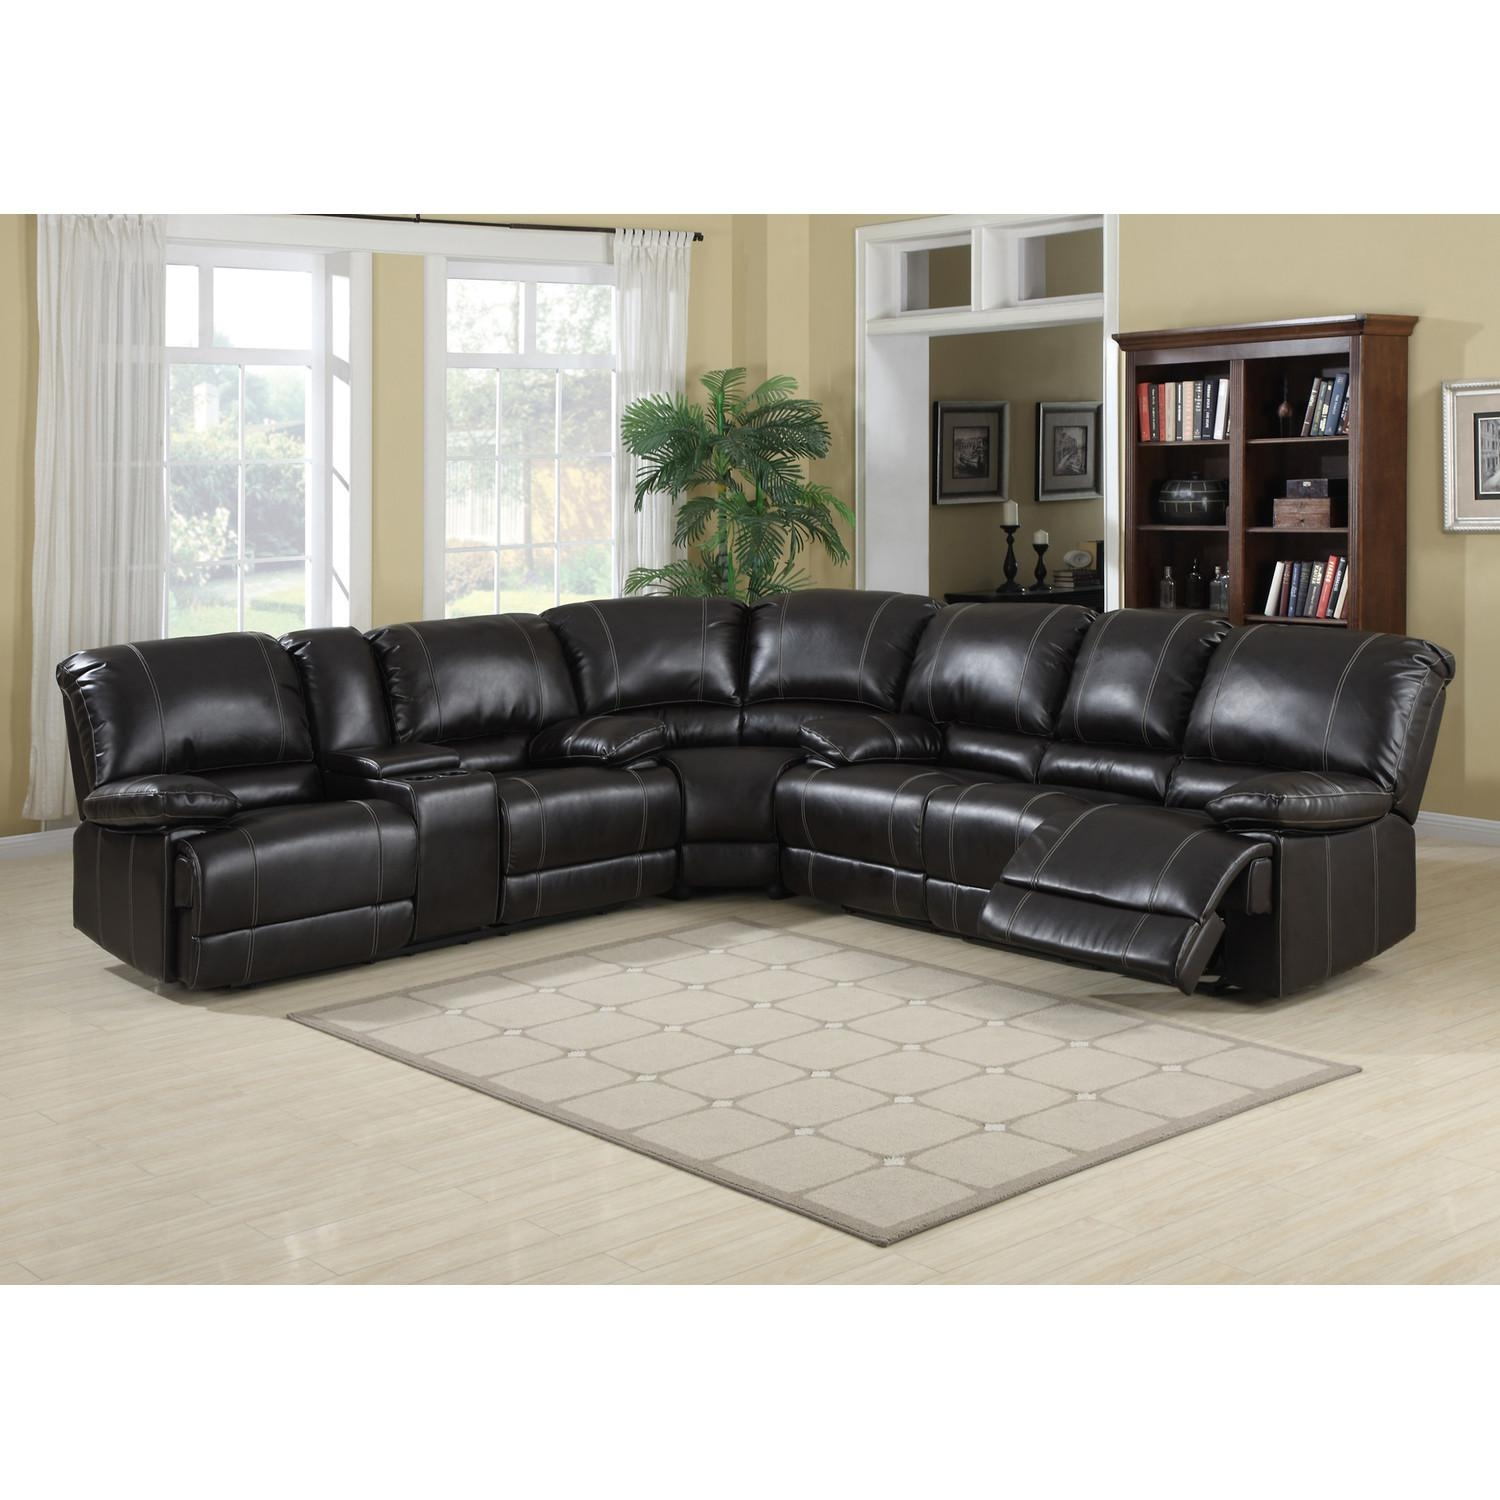 Furniture: Beautiful Sectional Sofas Cheap For Living Room Pertaining To Cheap Reclining Sectionals (View 10 of 15)